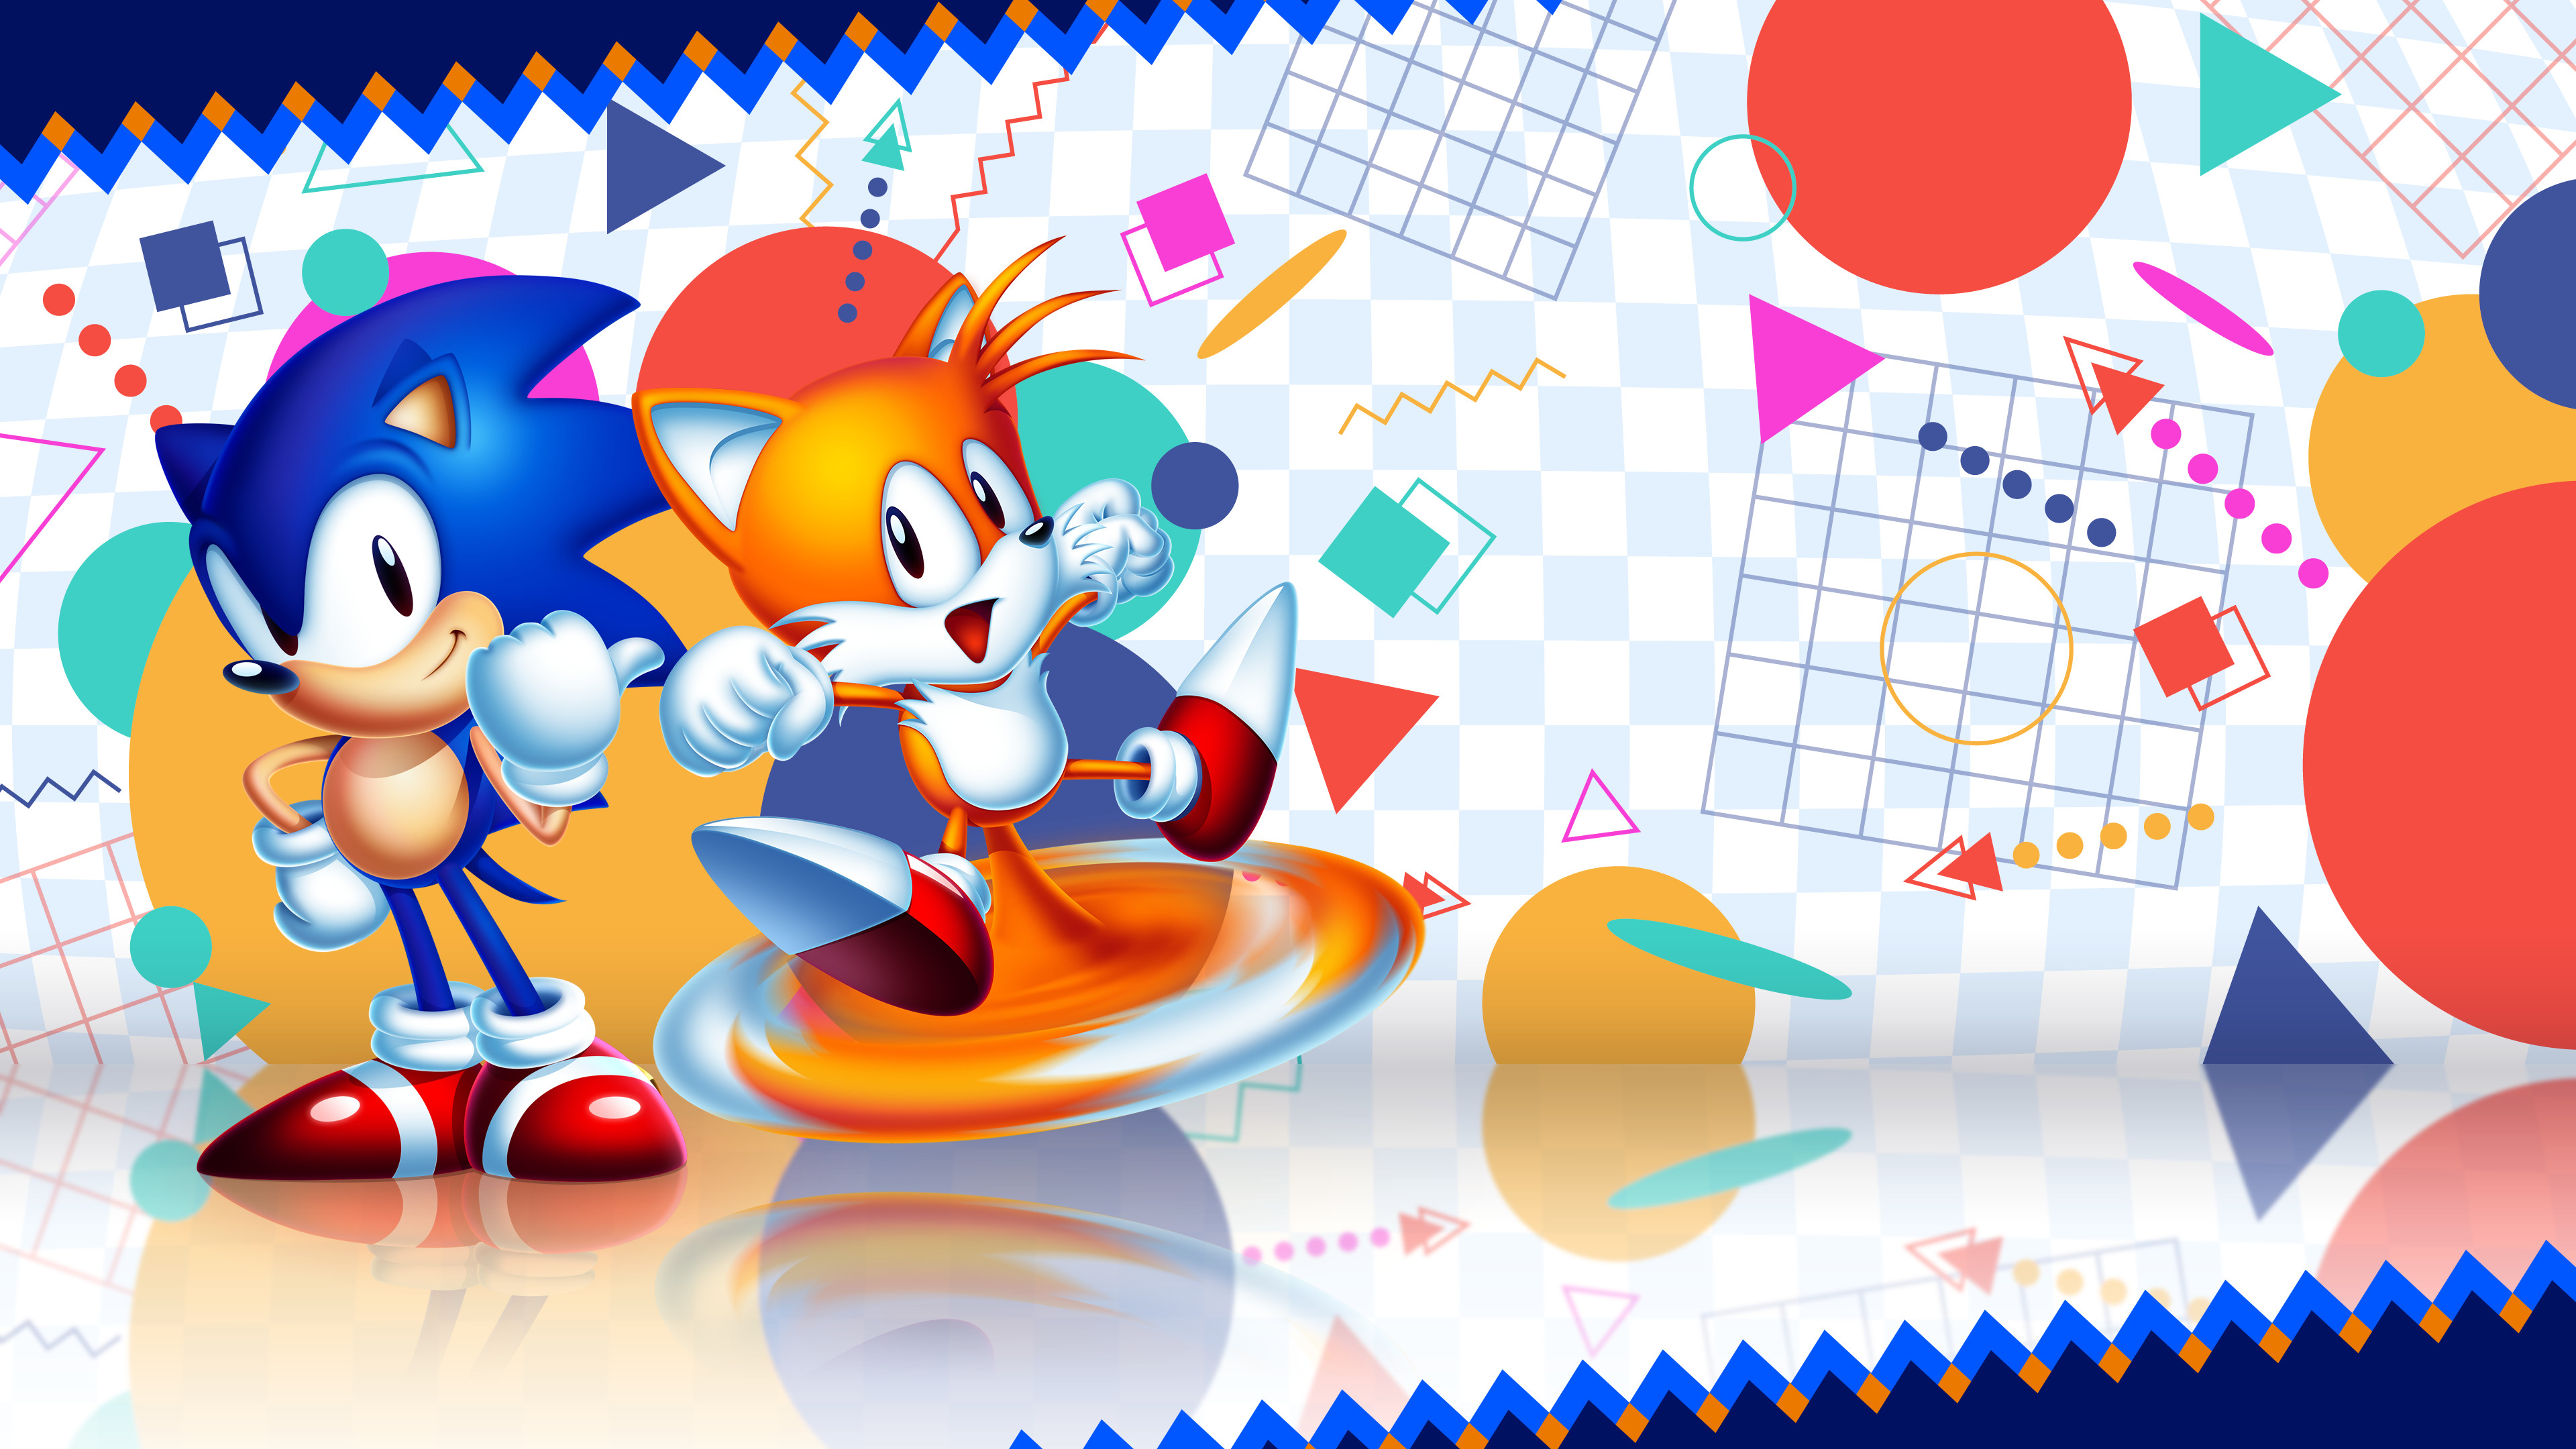 3840x2160 SKstalker 30 2 By the Fans, For the Fans - Sonic 2 HD wallpaper by  TimeWarp33